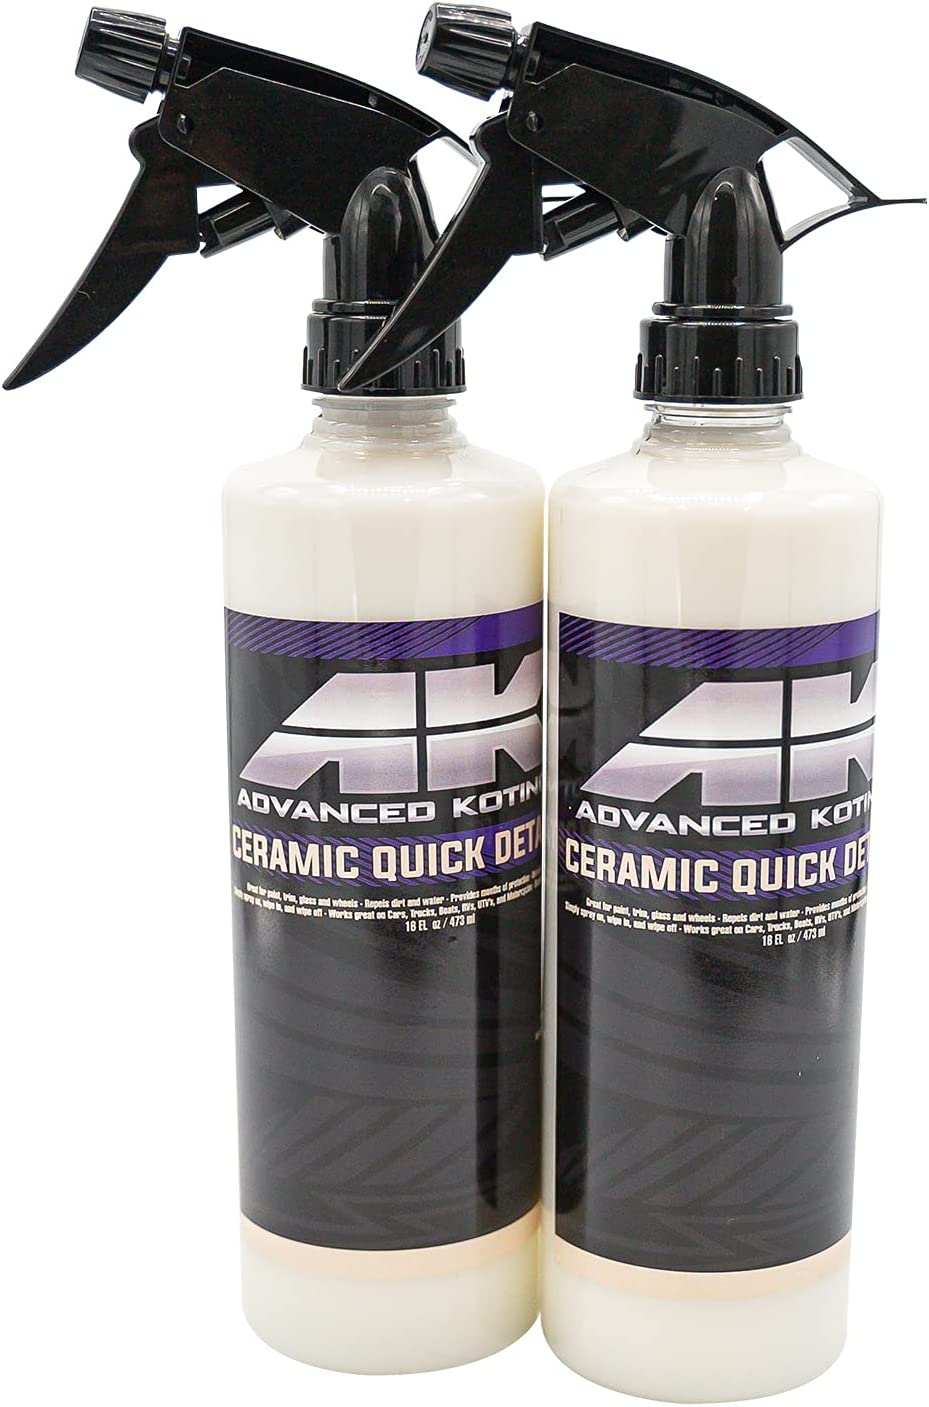 AK ADVANCED KOTINGS Ceramic Quick Max 72% OFF Protects Ranking TOP13 Detailer a Cleans